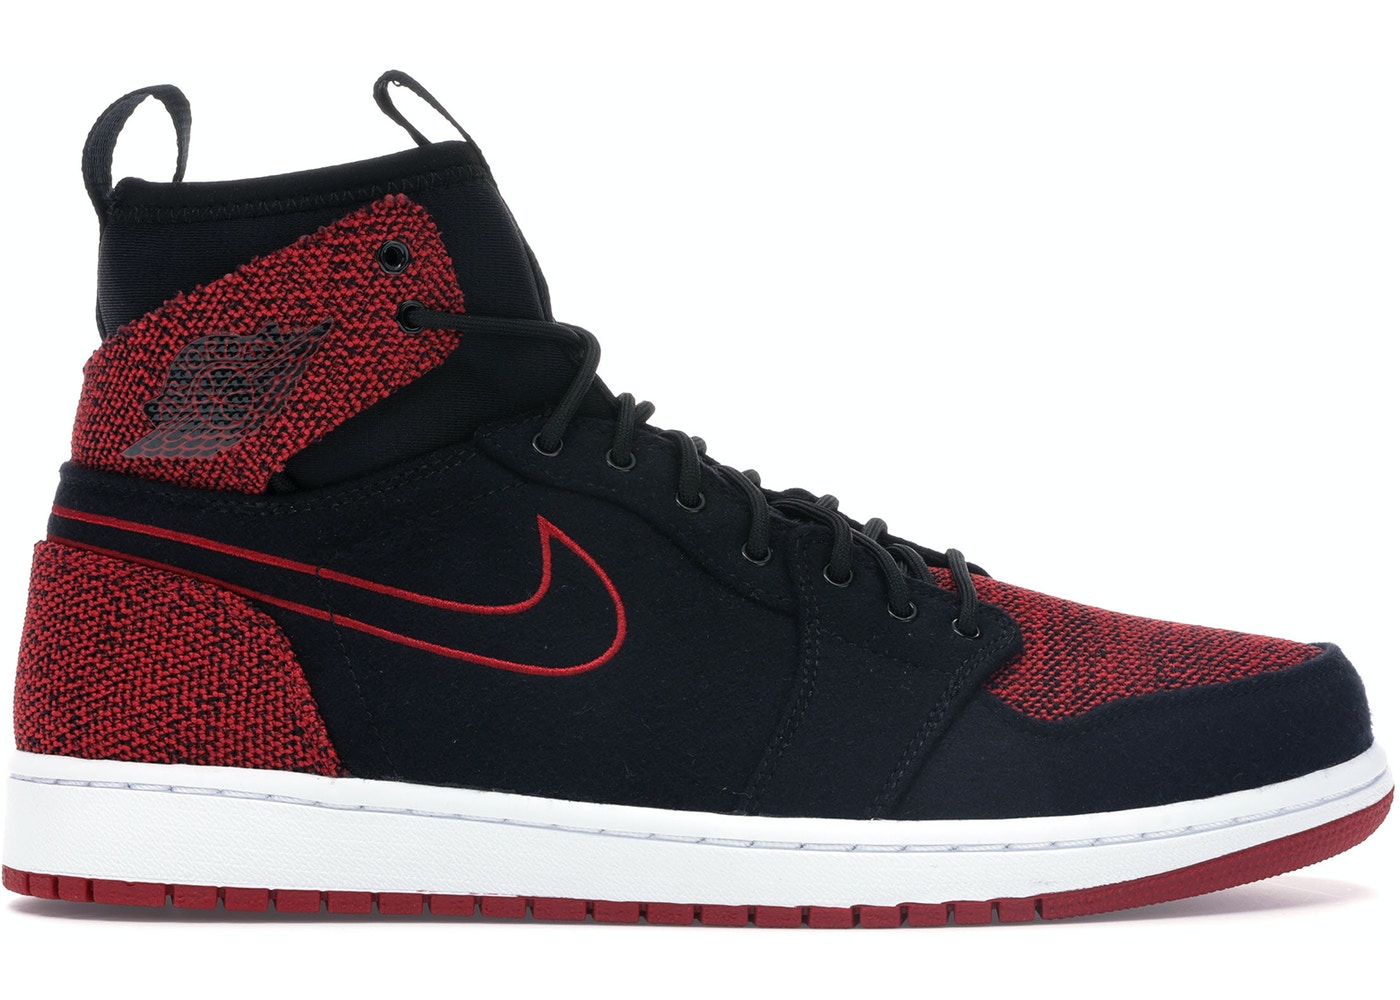 newest collection f69eb ec99a Jordan 1 Retro Ultra High Bred - 844700-001